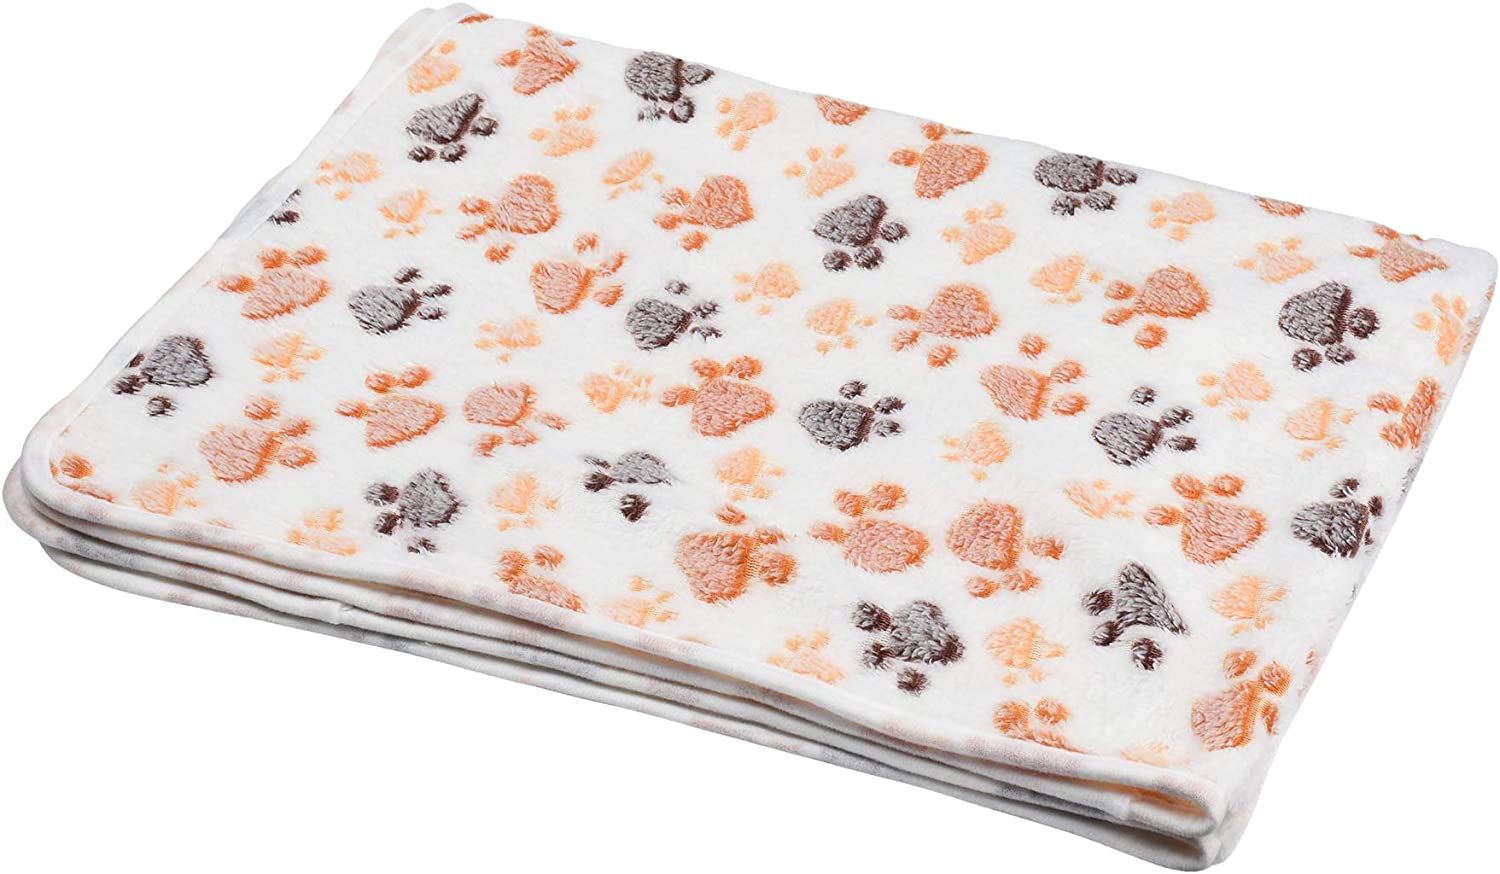 Cosmos Soft Pet Dog Cat Puppy Blanket Warm Bed Mat, 41  x 30  (White)